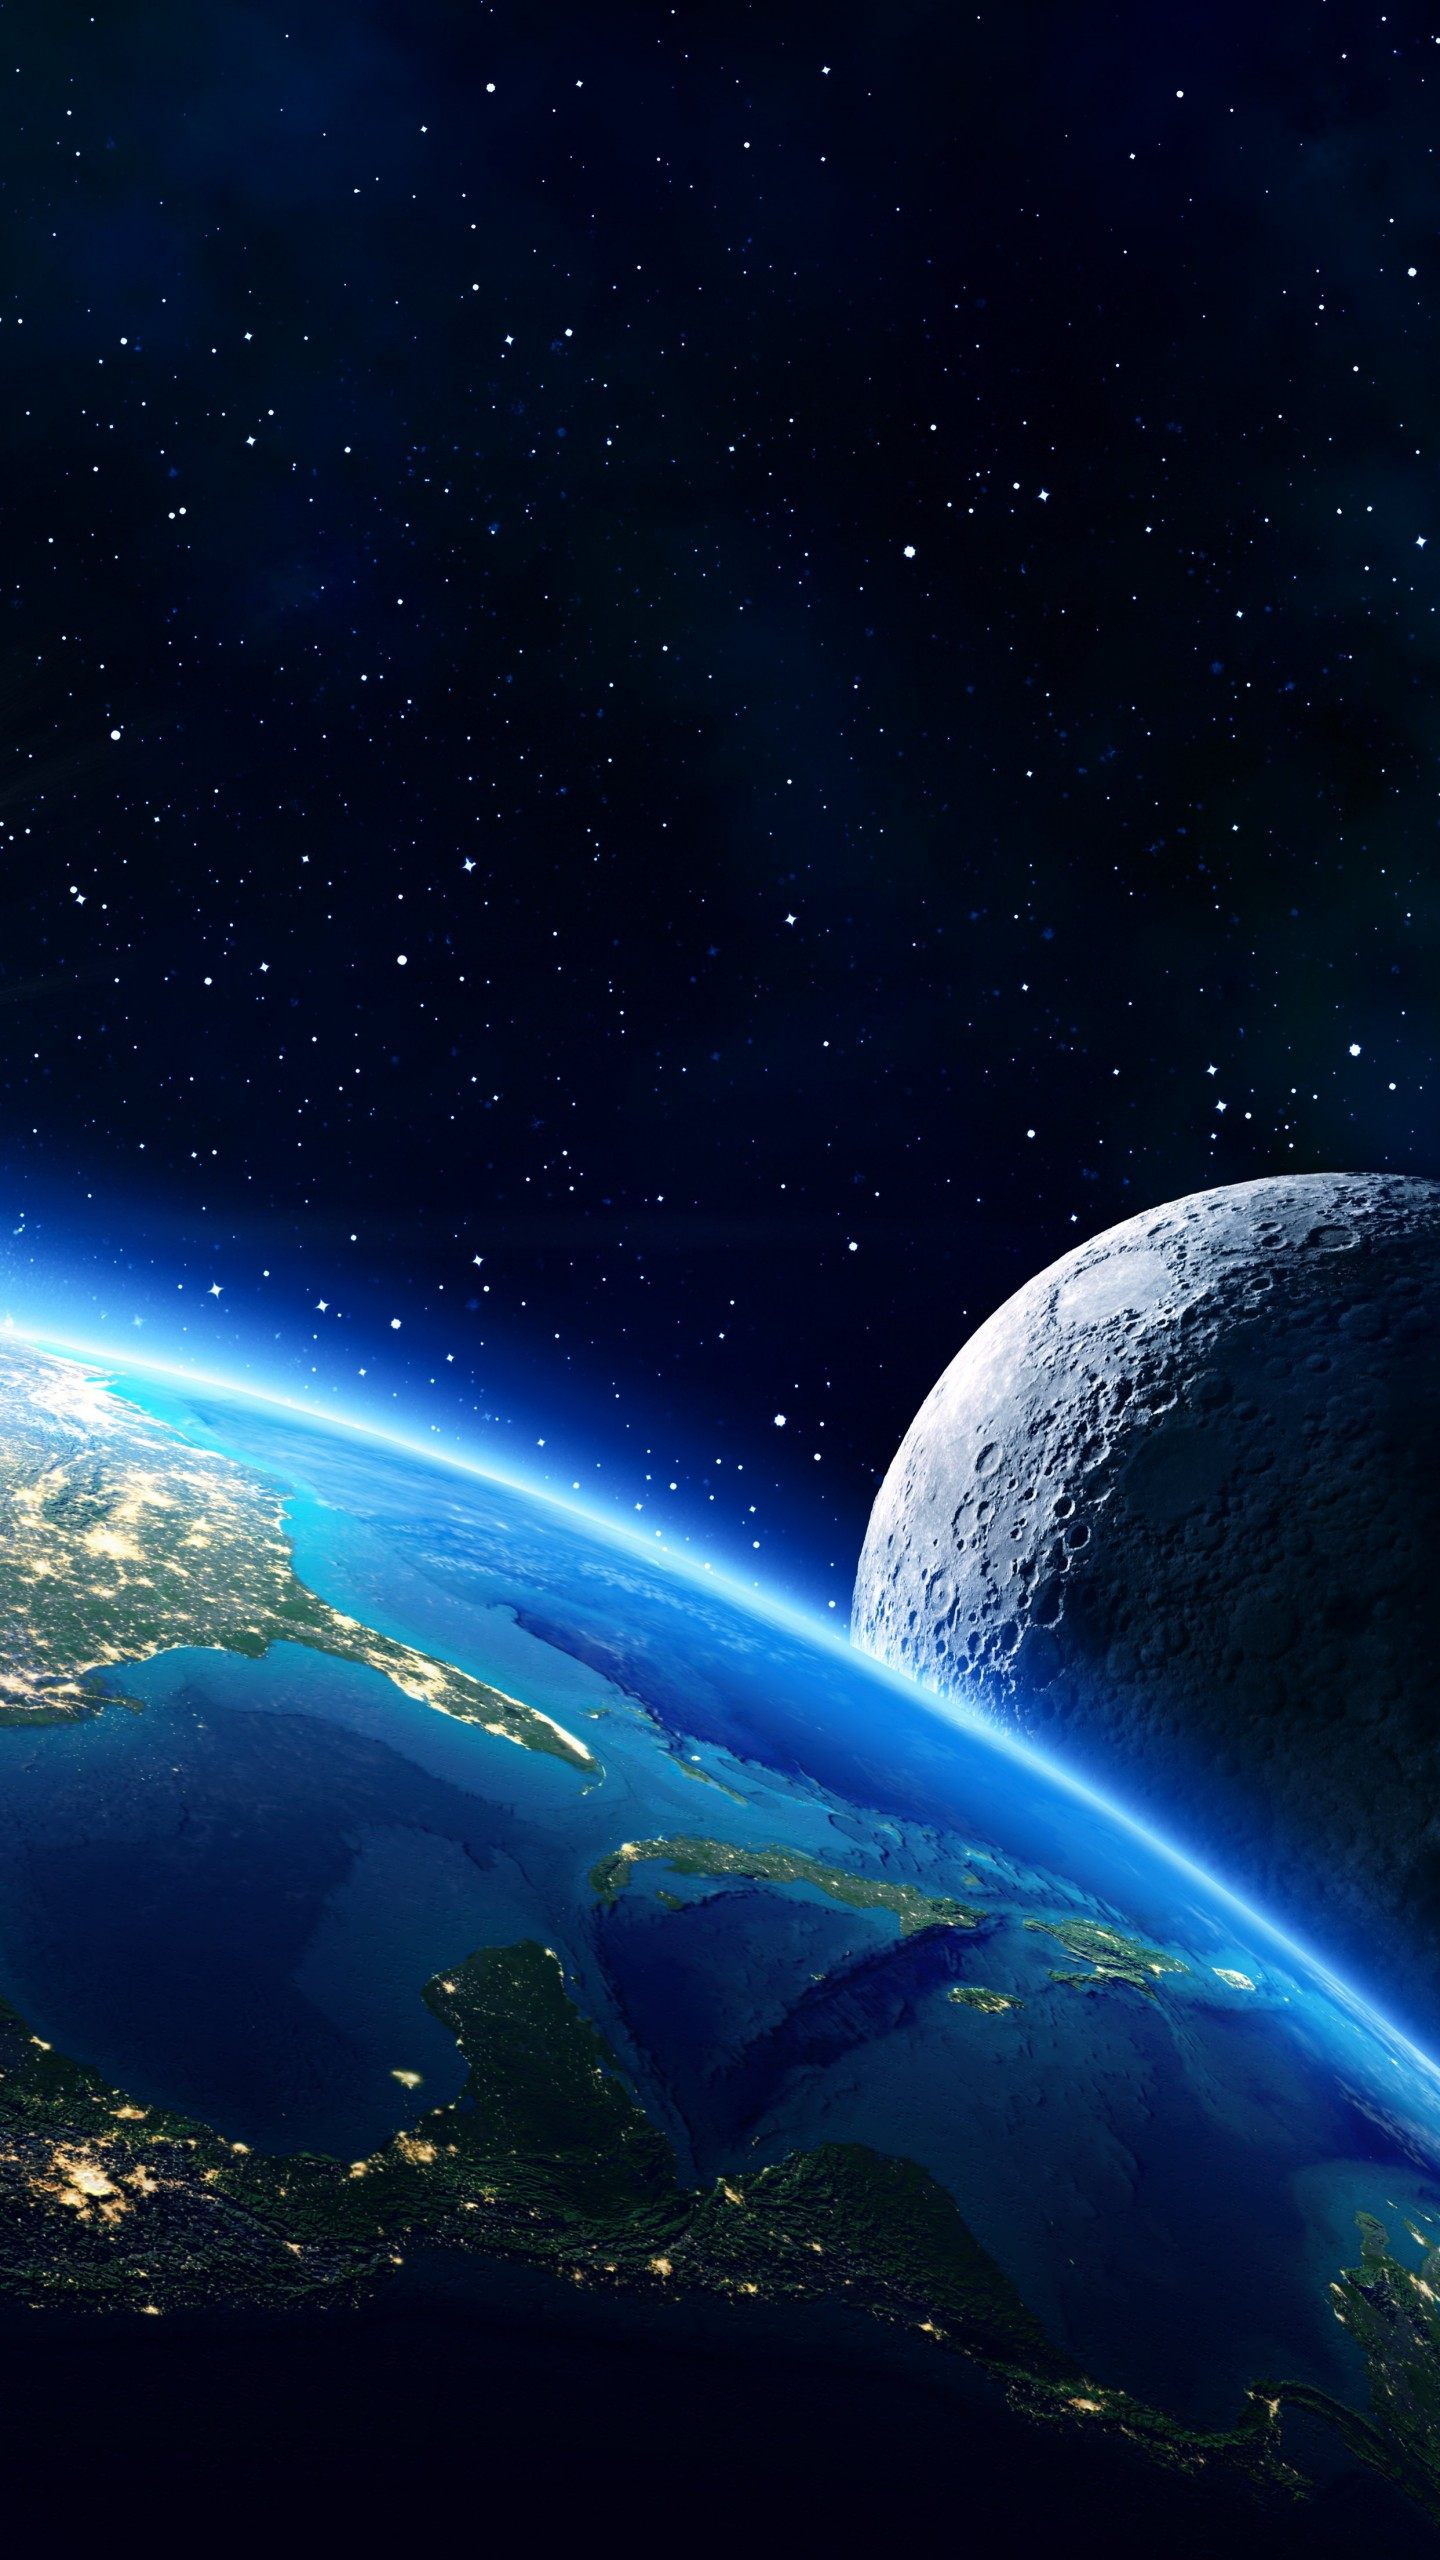 Space Hd Wallpapers 1080p Wallpaper Earth Moon Planet Star 5k Space 16639